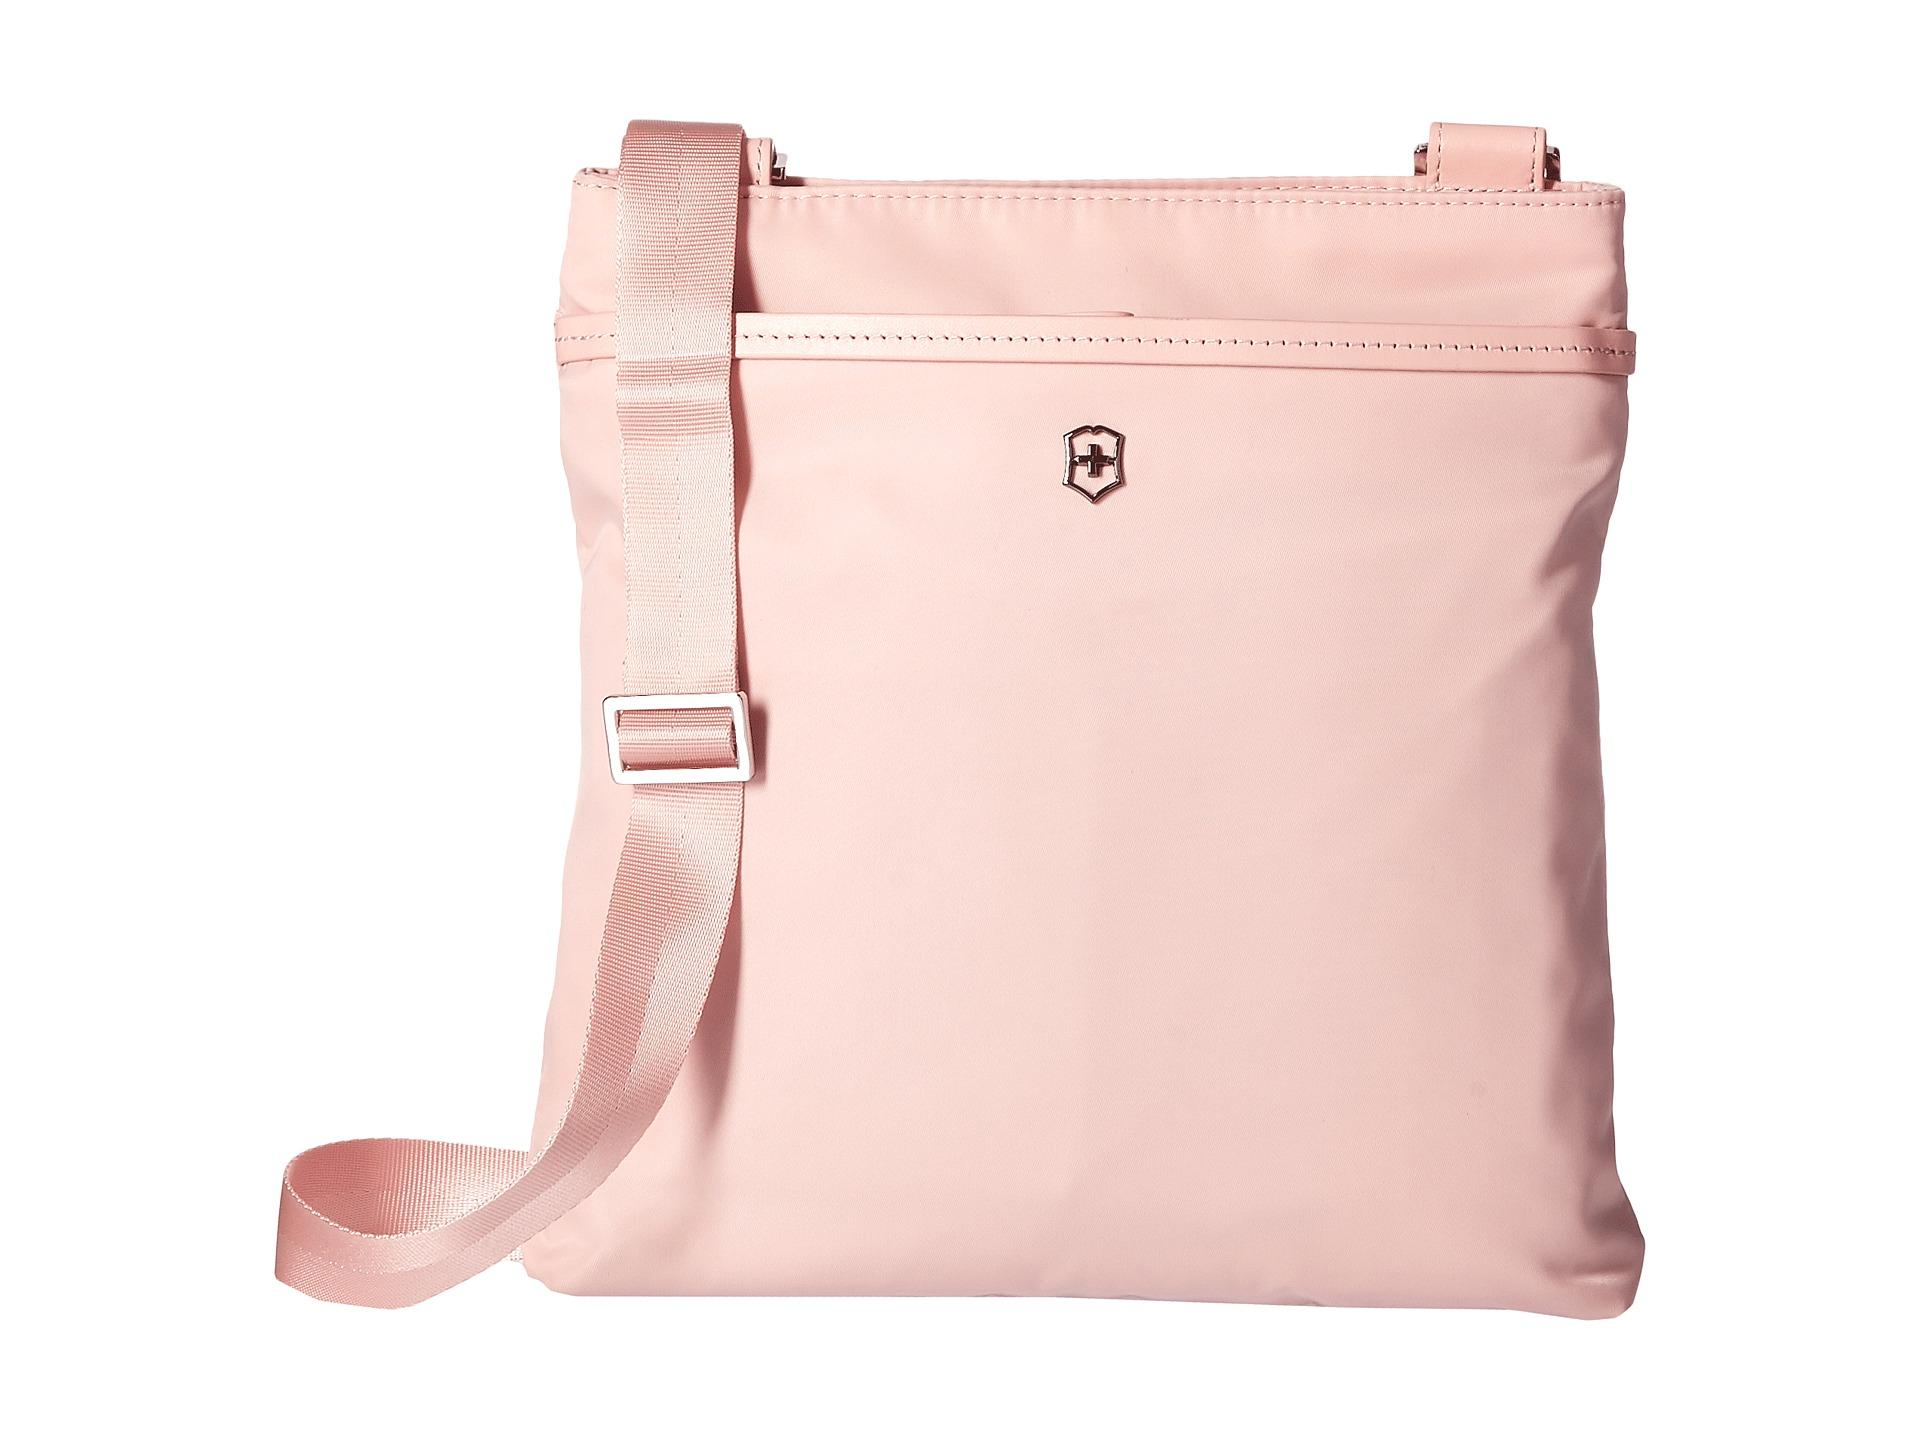 5b989f1d7c Lyst - Victorinox Victoria Affinity Crossbody Day Bag in Pink